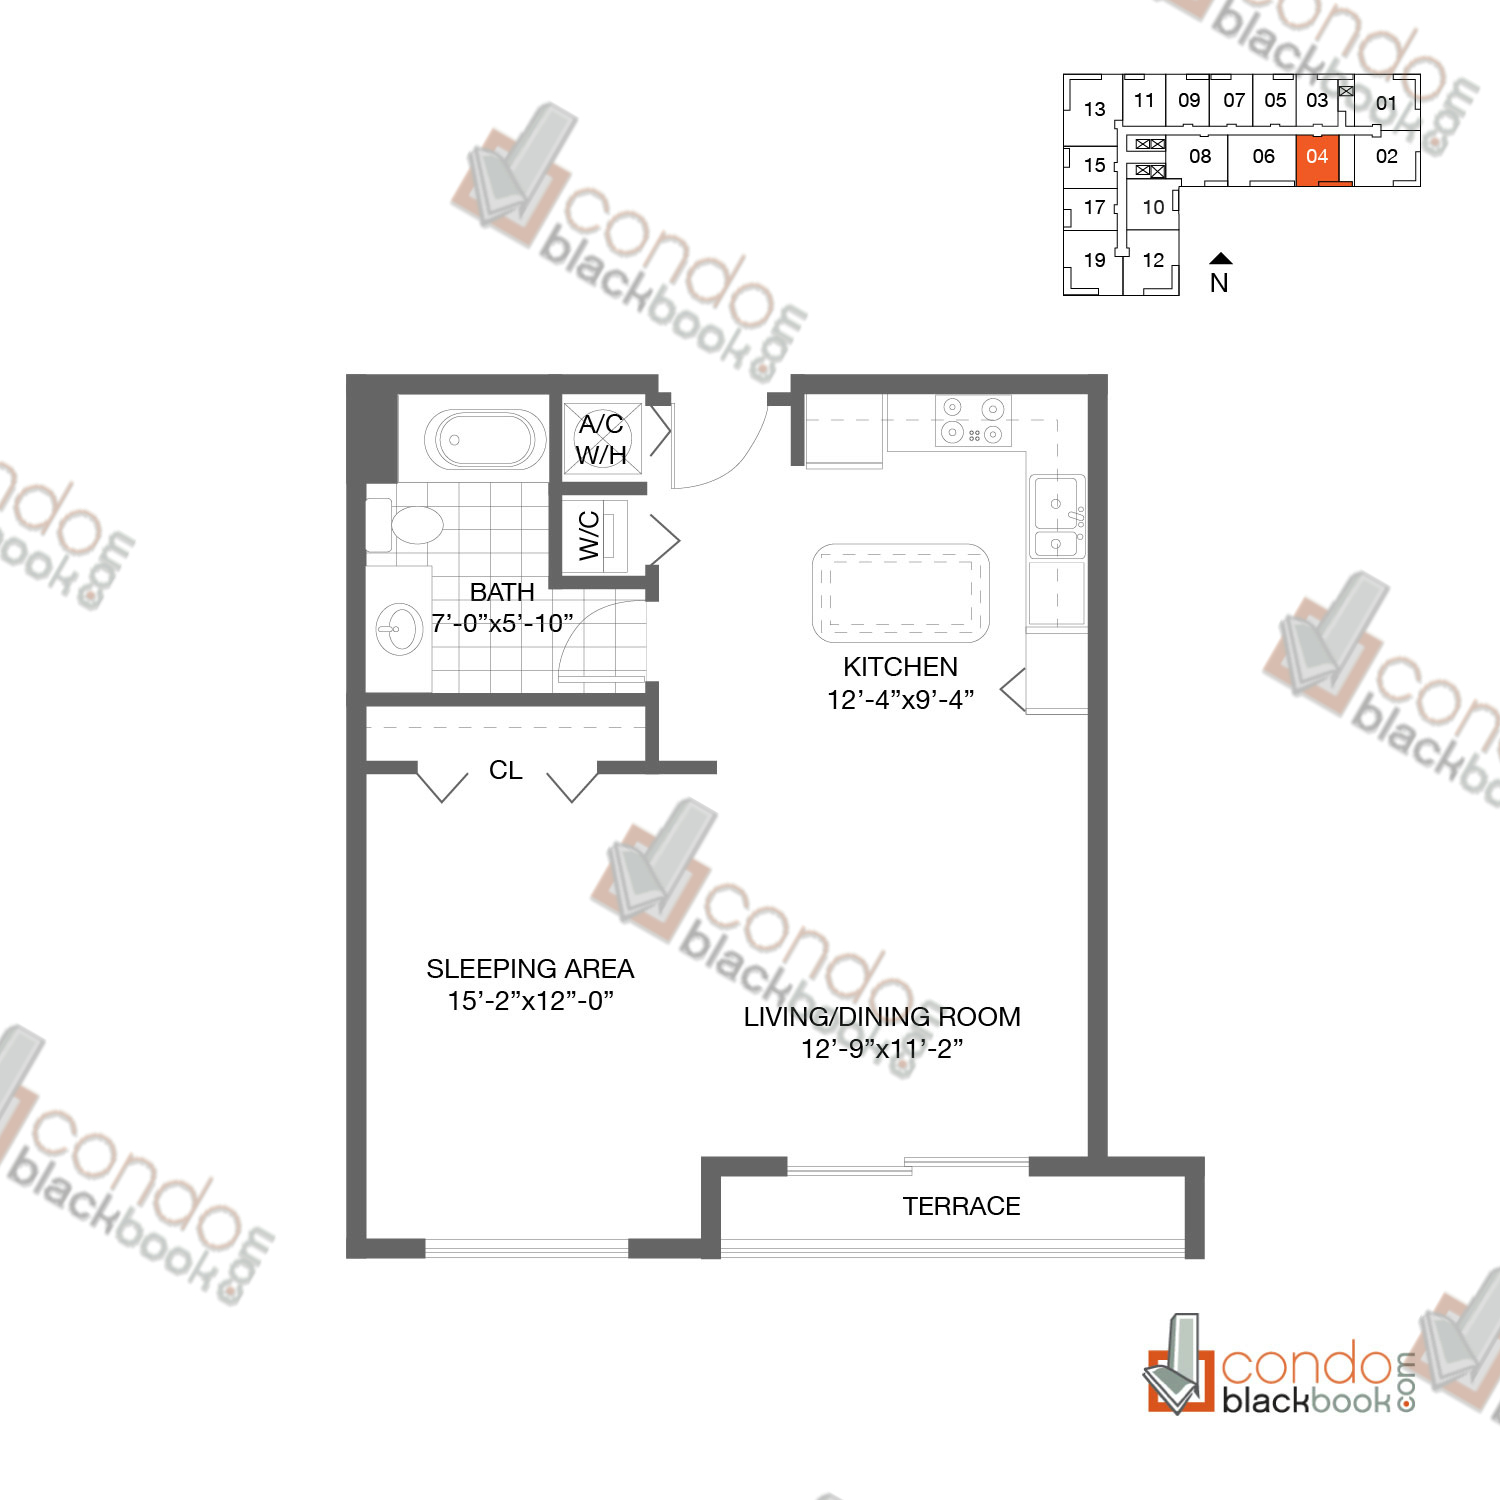 Floor plan for Loft Downtown II Downtown Miami Miami, model A4, line 04, 1/1 bedrooms, 665 sq ft